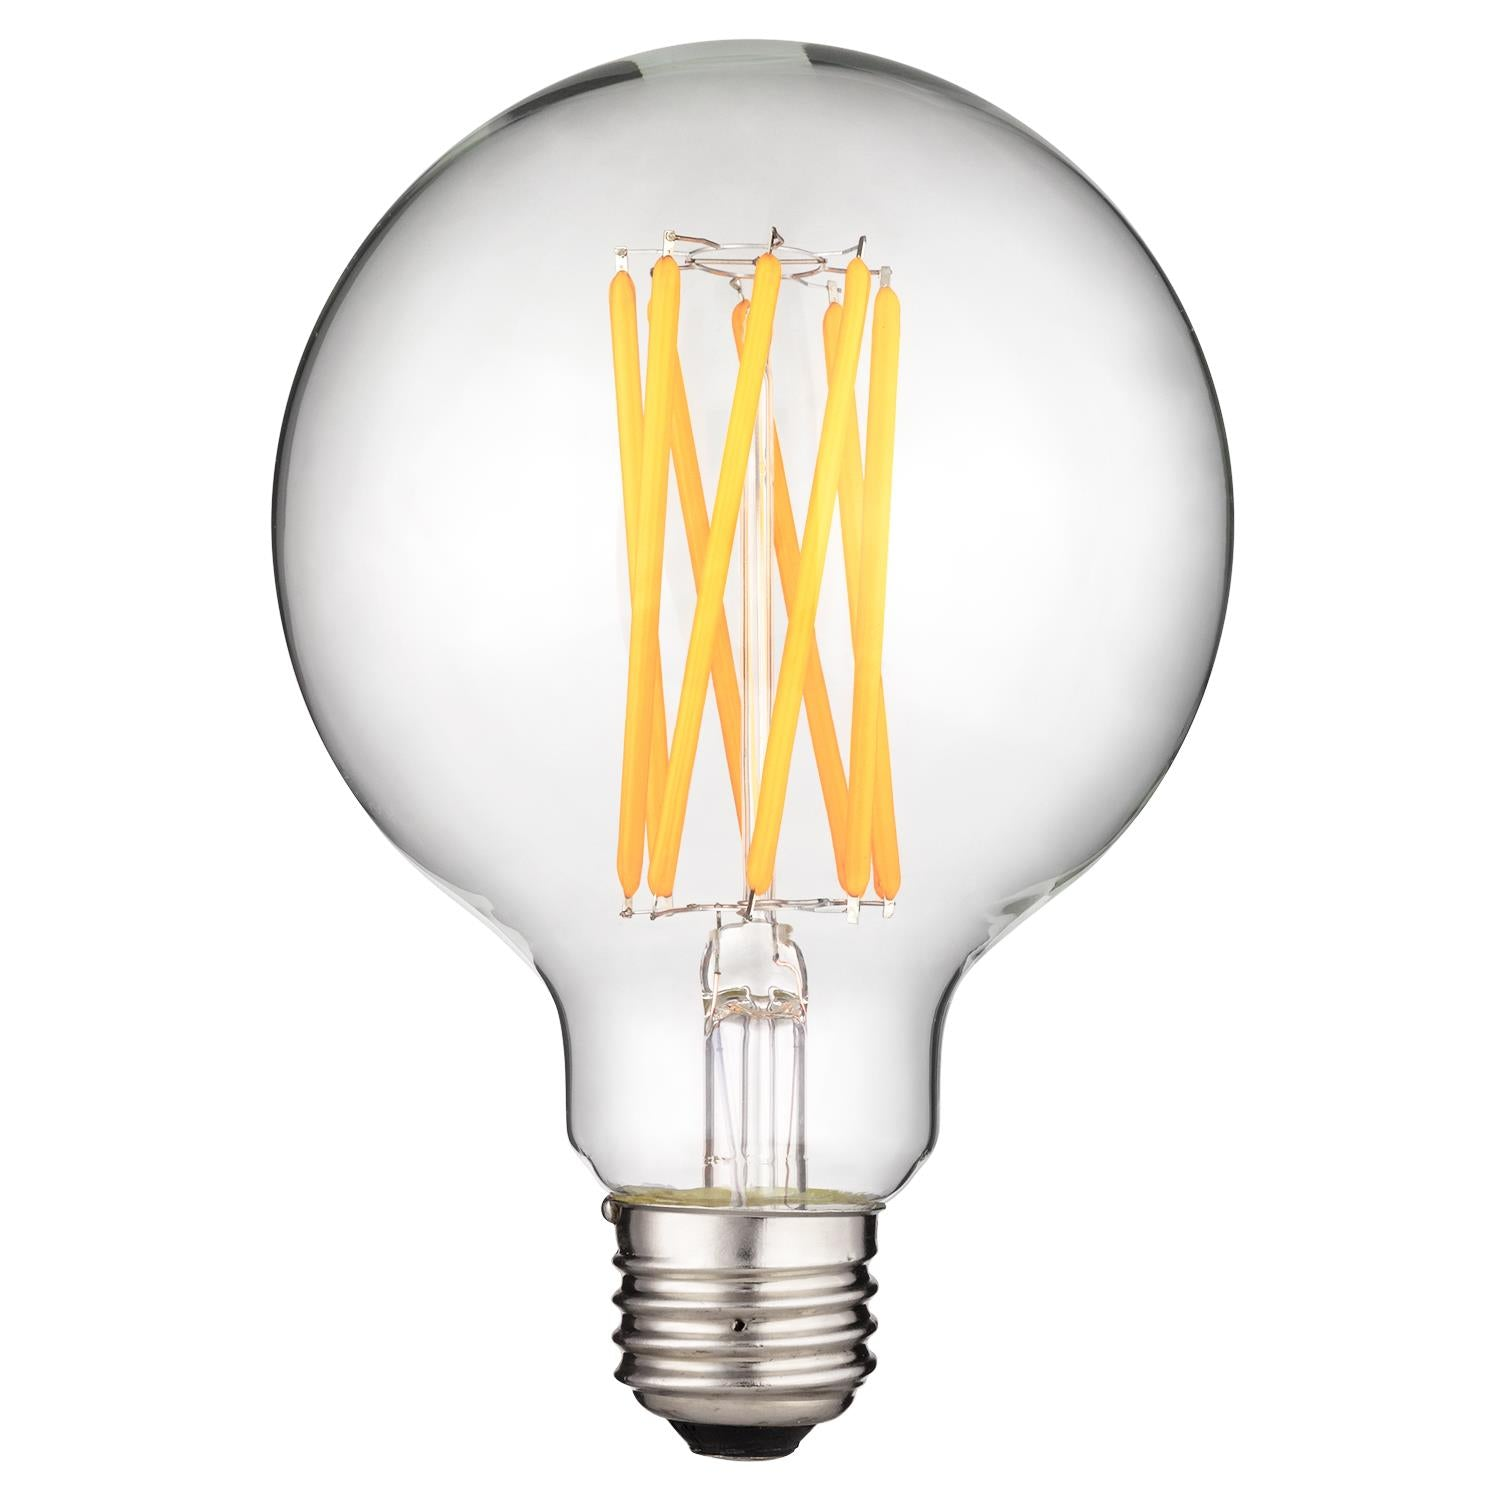 SUNLITE 80472-SU E26 G40 LED Filament 8w Clear Dimmable Light Bulb 2700K Warm White